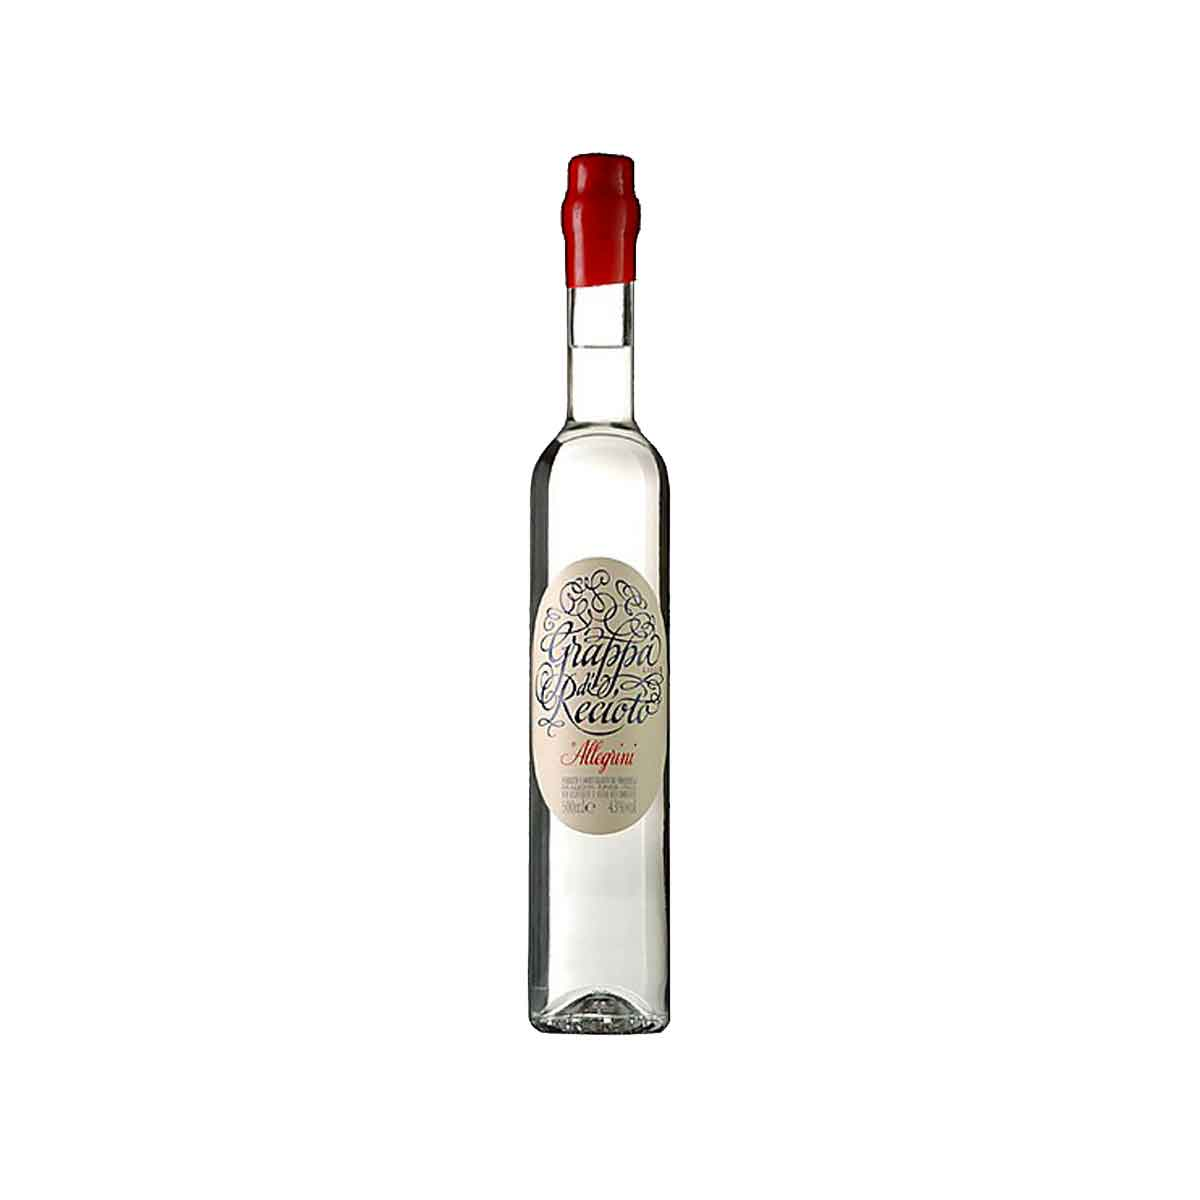 Grappa di Recioto, Allegrini, Grappe e Distillati - Privilege Wine